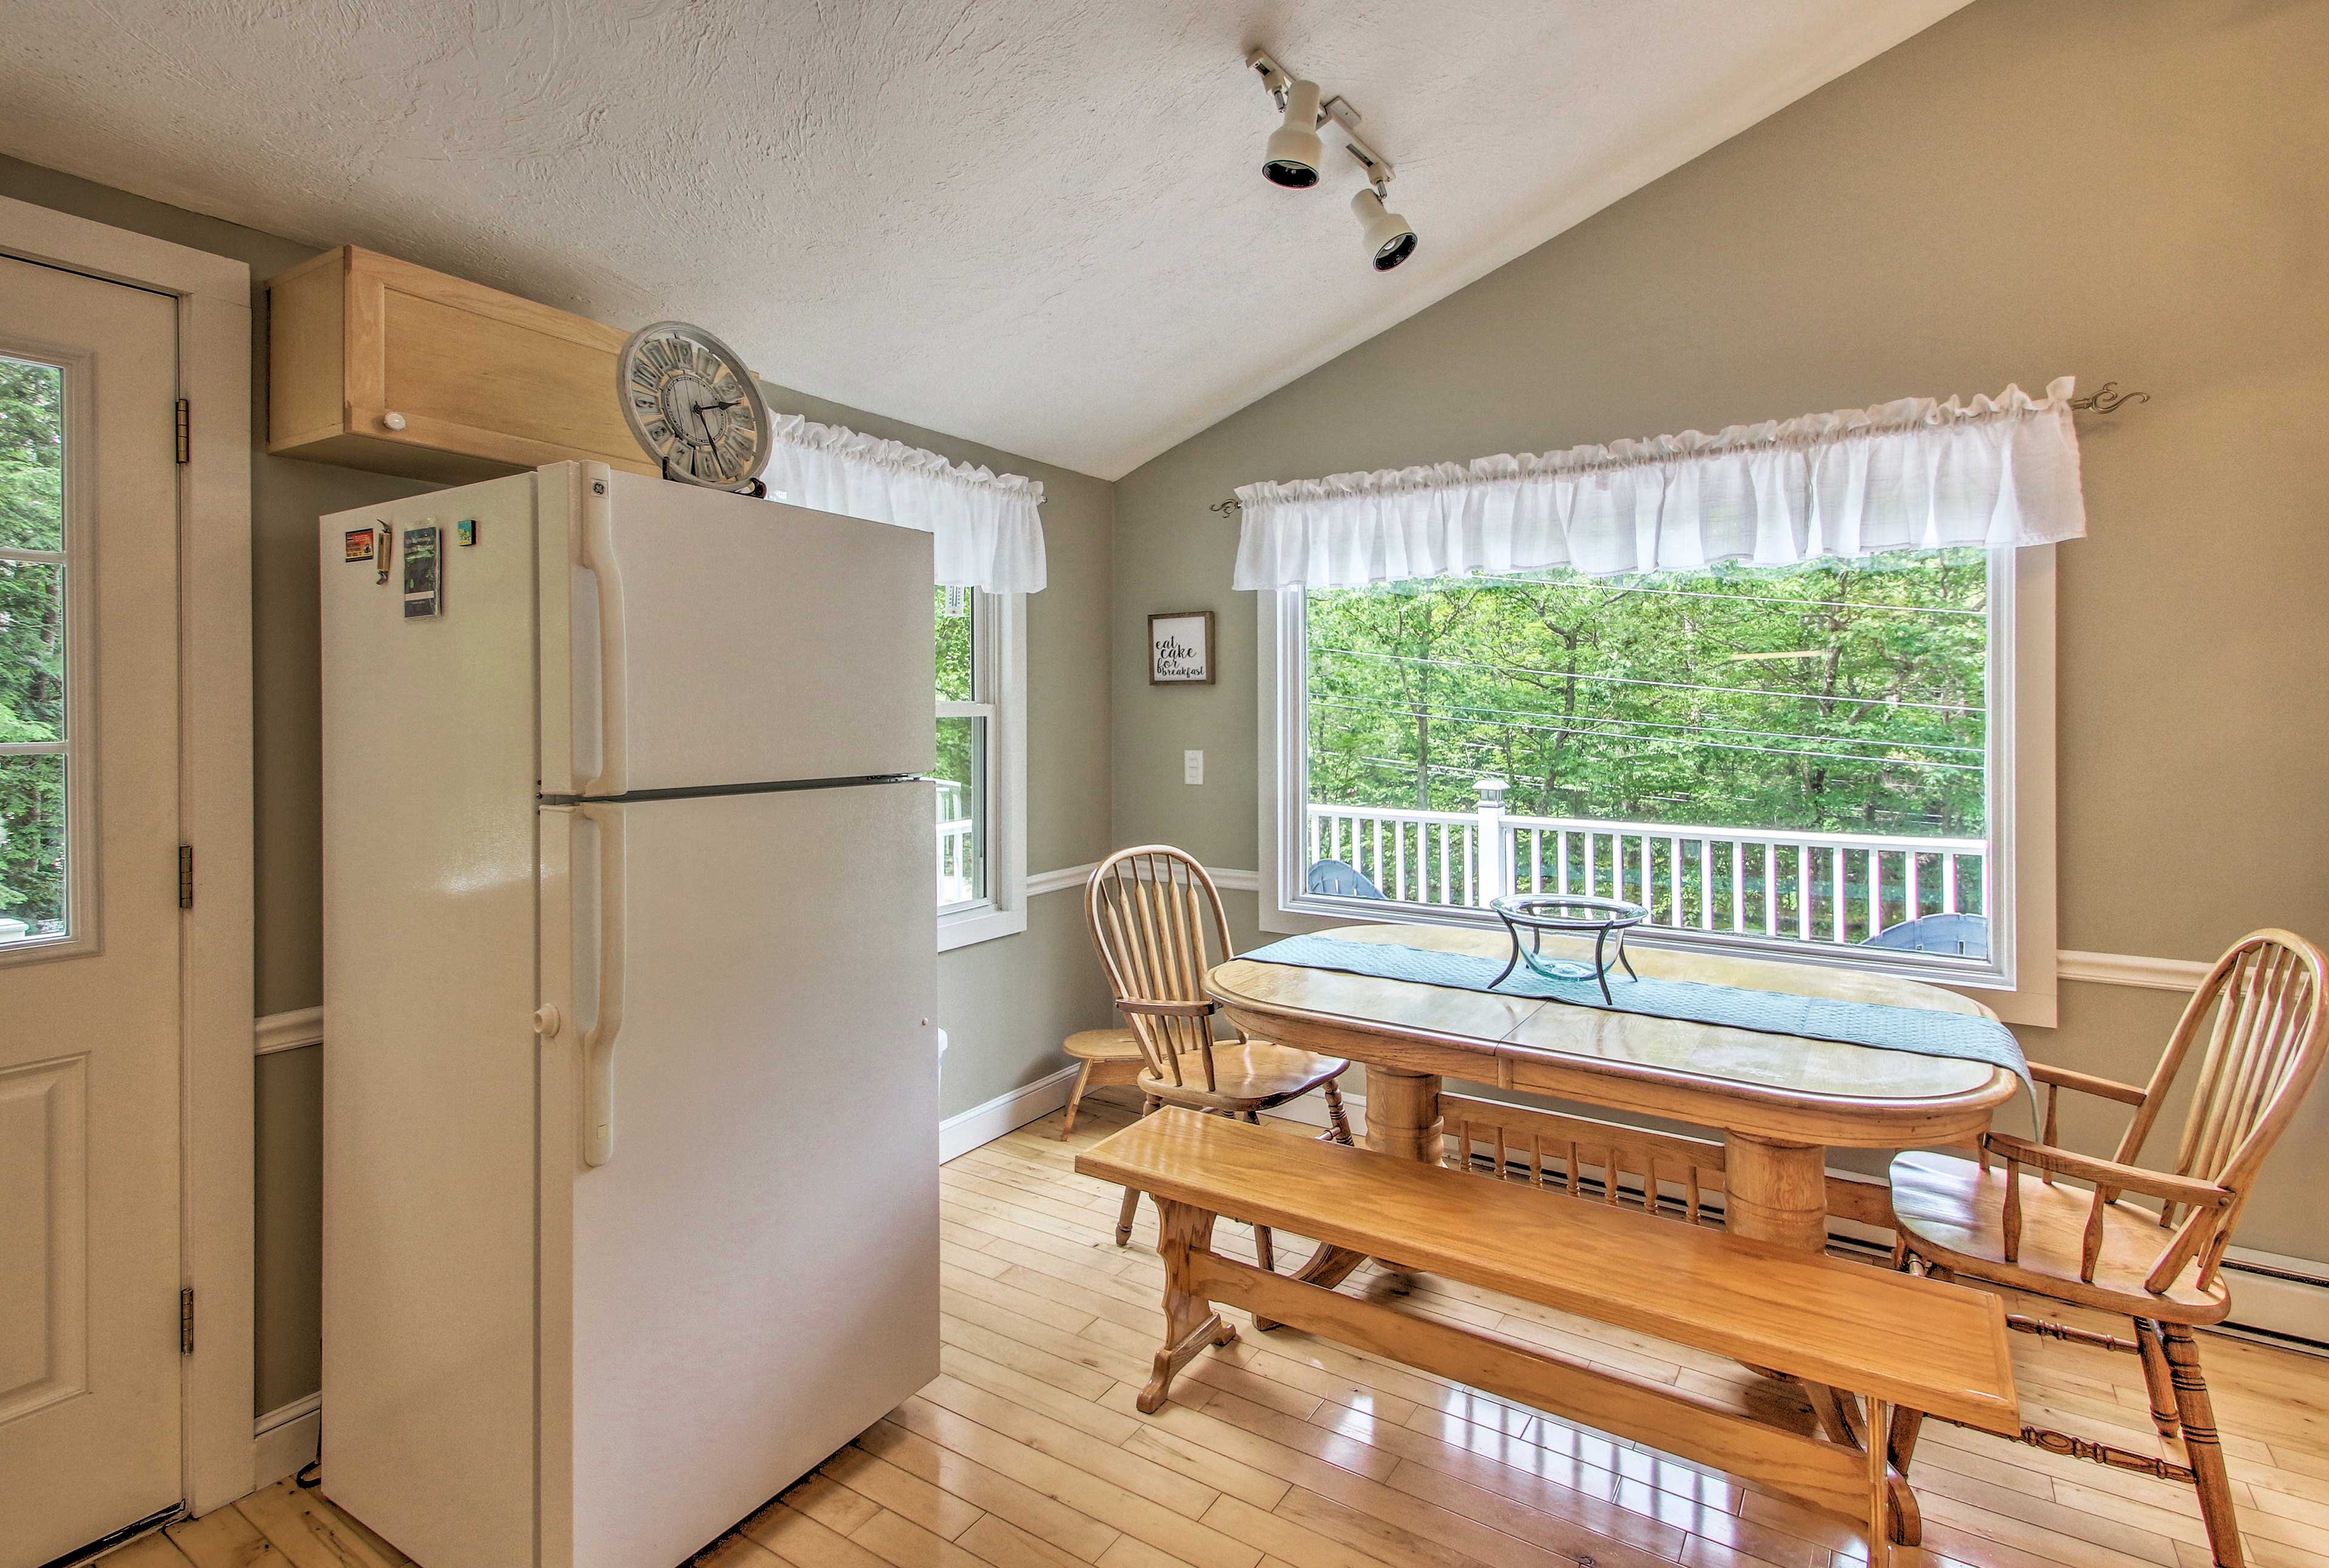 Enjoy breakfast at the dining table with bench seating.